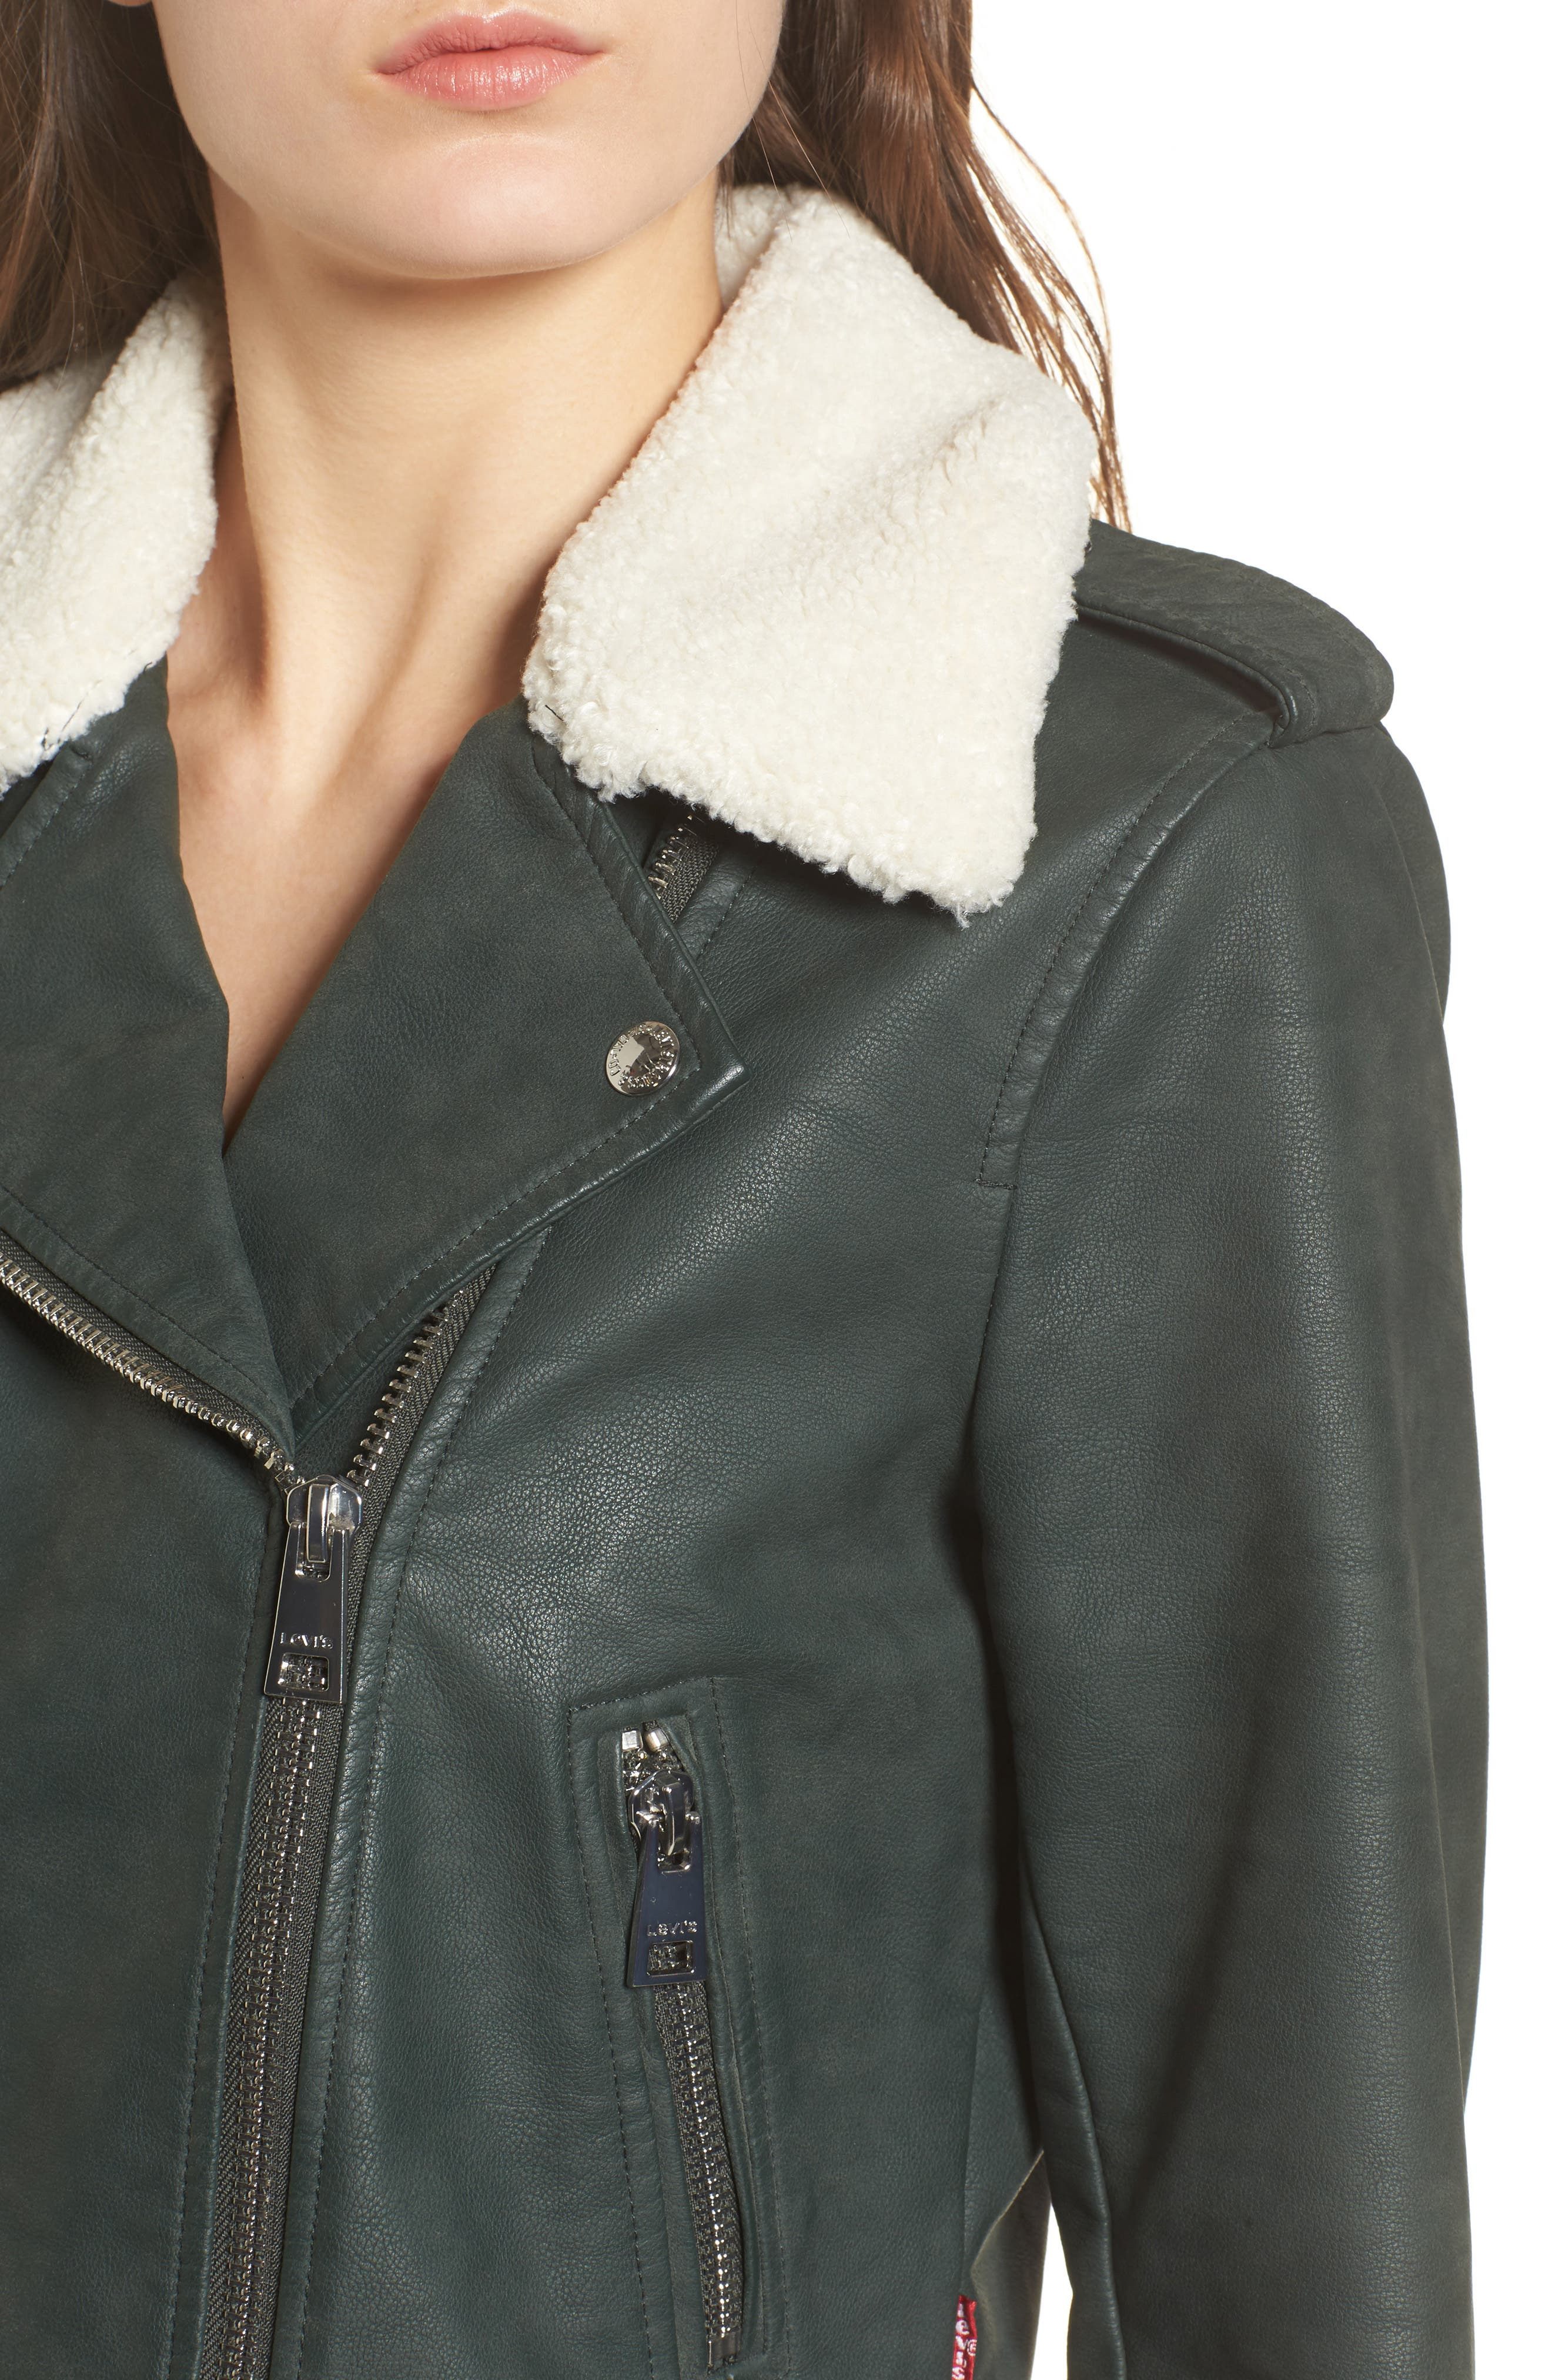 Levis<sup>®</sup> Sherpa Faux Leather Moto Jacket with Faux Fur Collar,                             Alternate thumbnail 8, color,